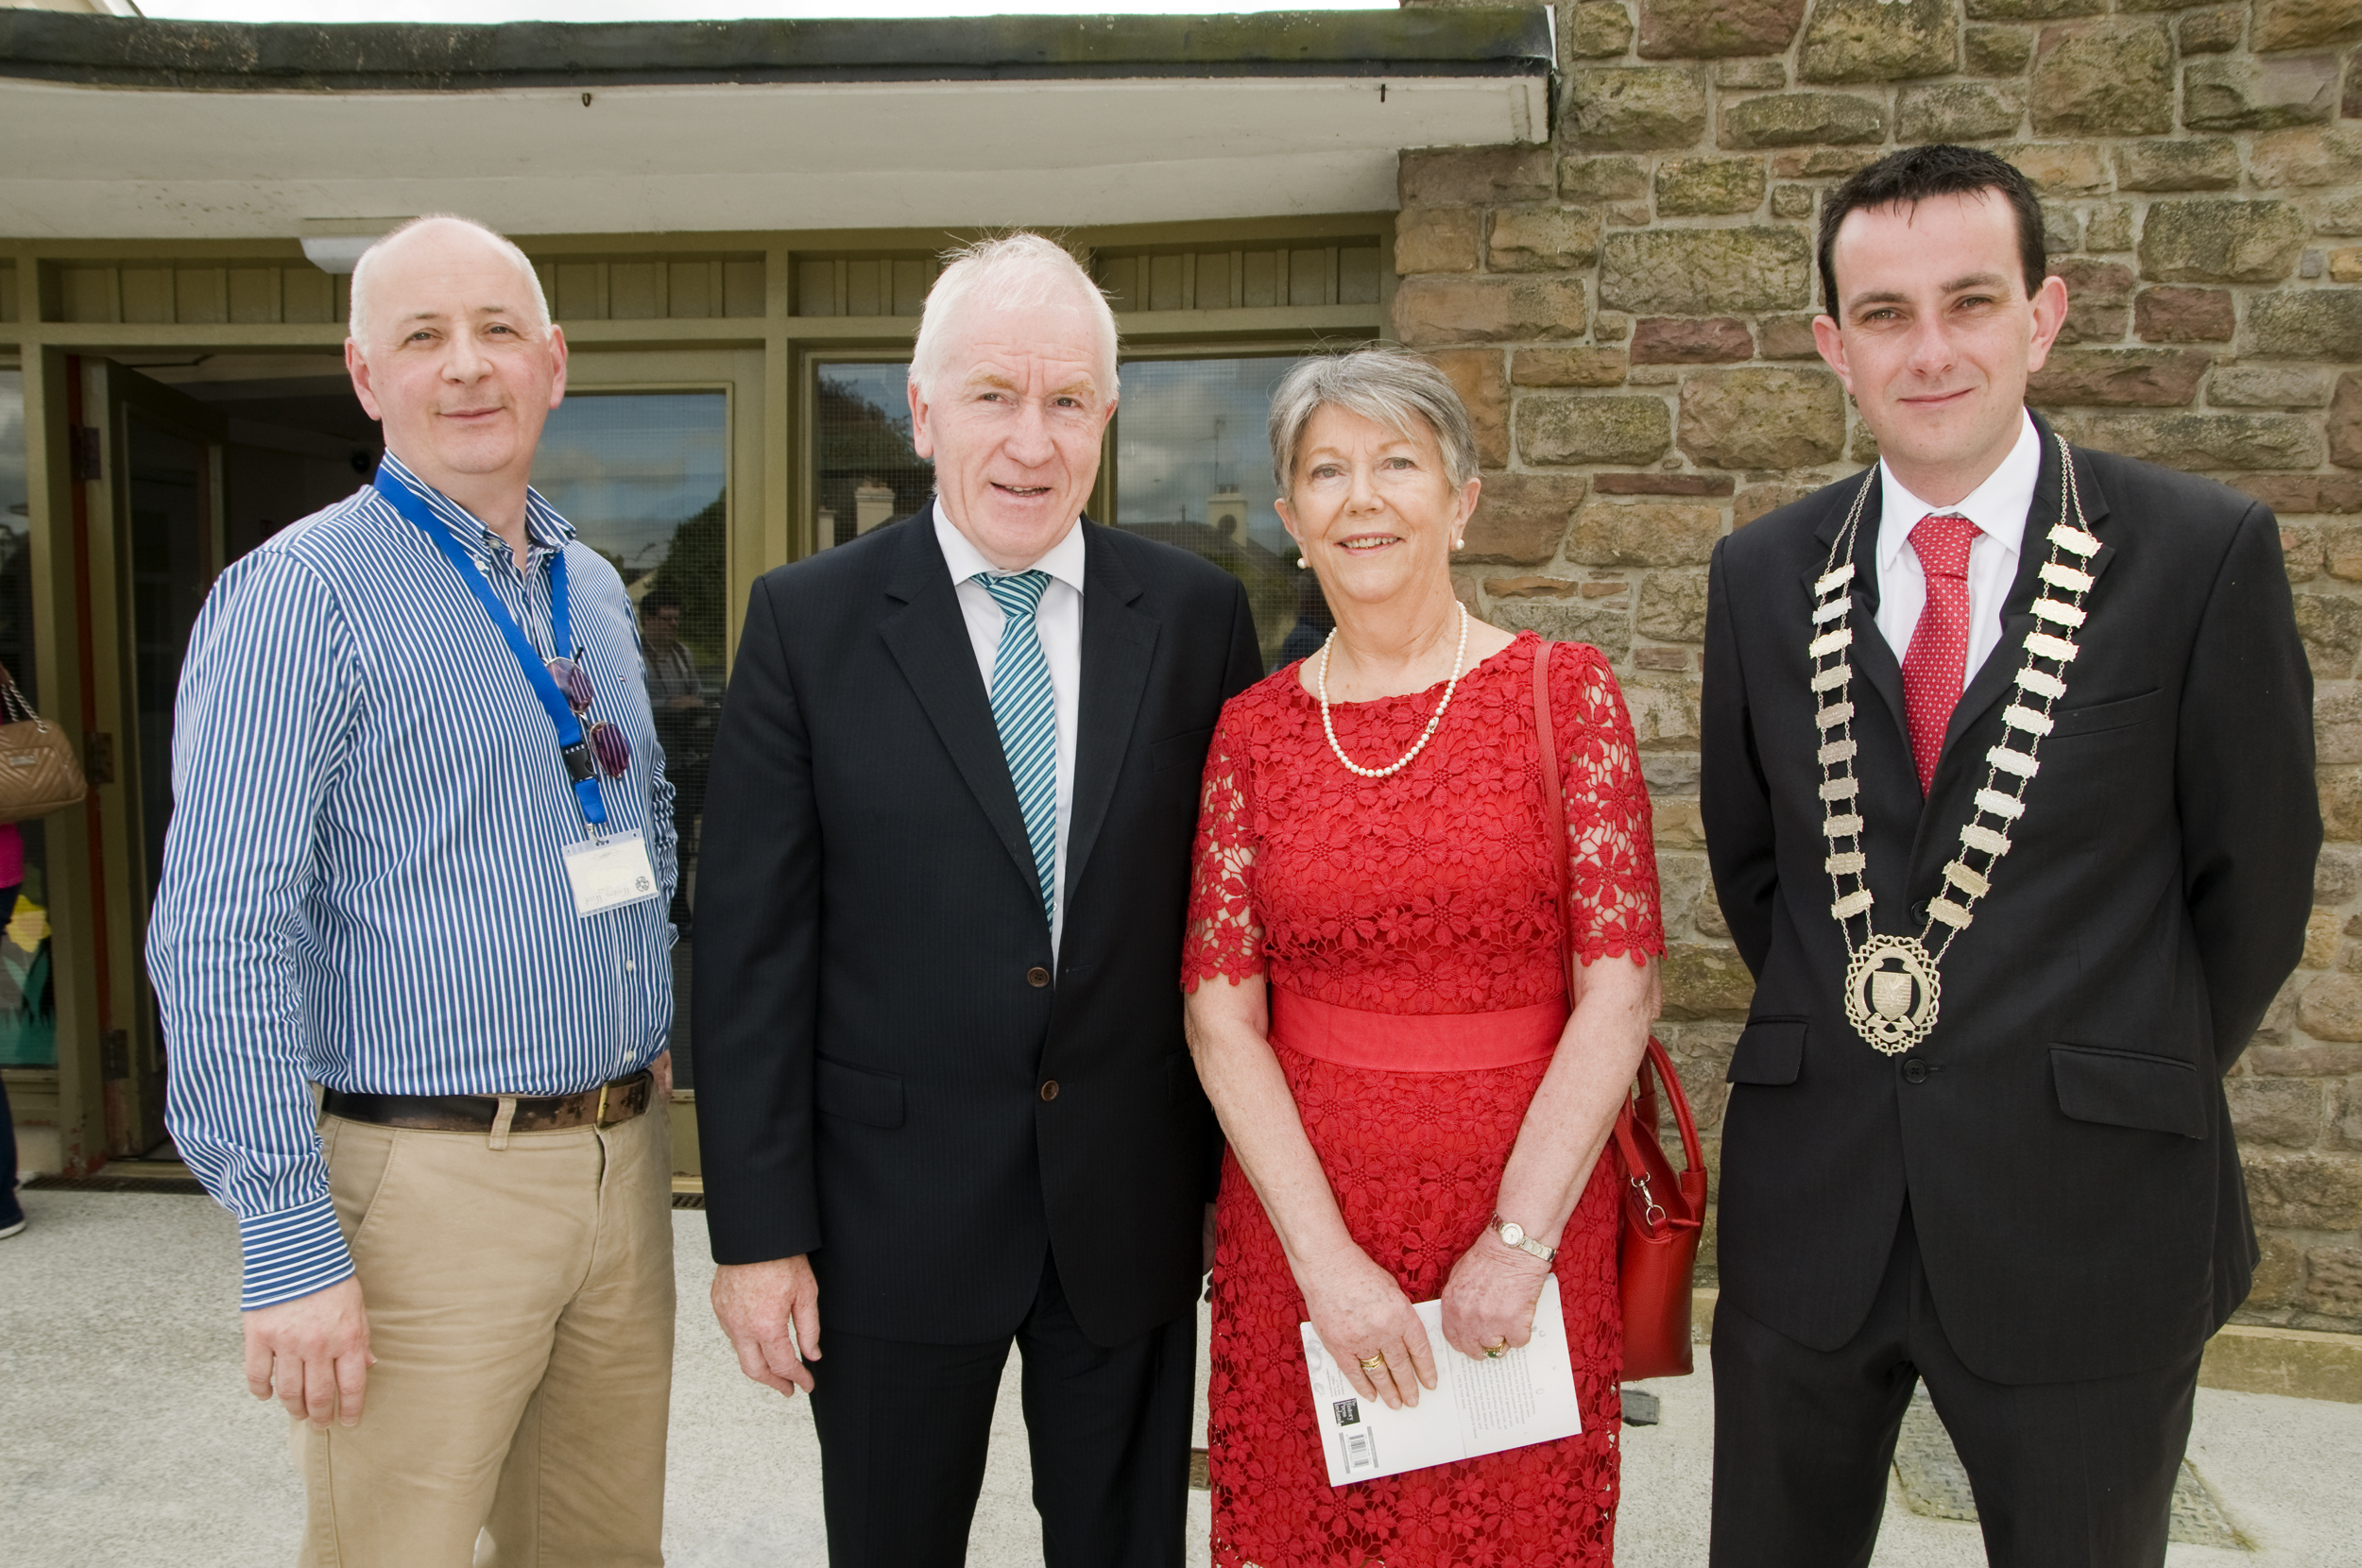 Book launch Ml Lynch, Kerry County Archivist,, Minister, Kay, Jimmy Moloney, Mayor of Listowel